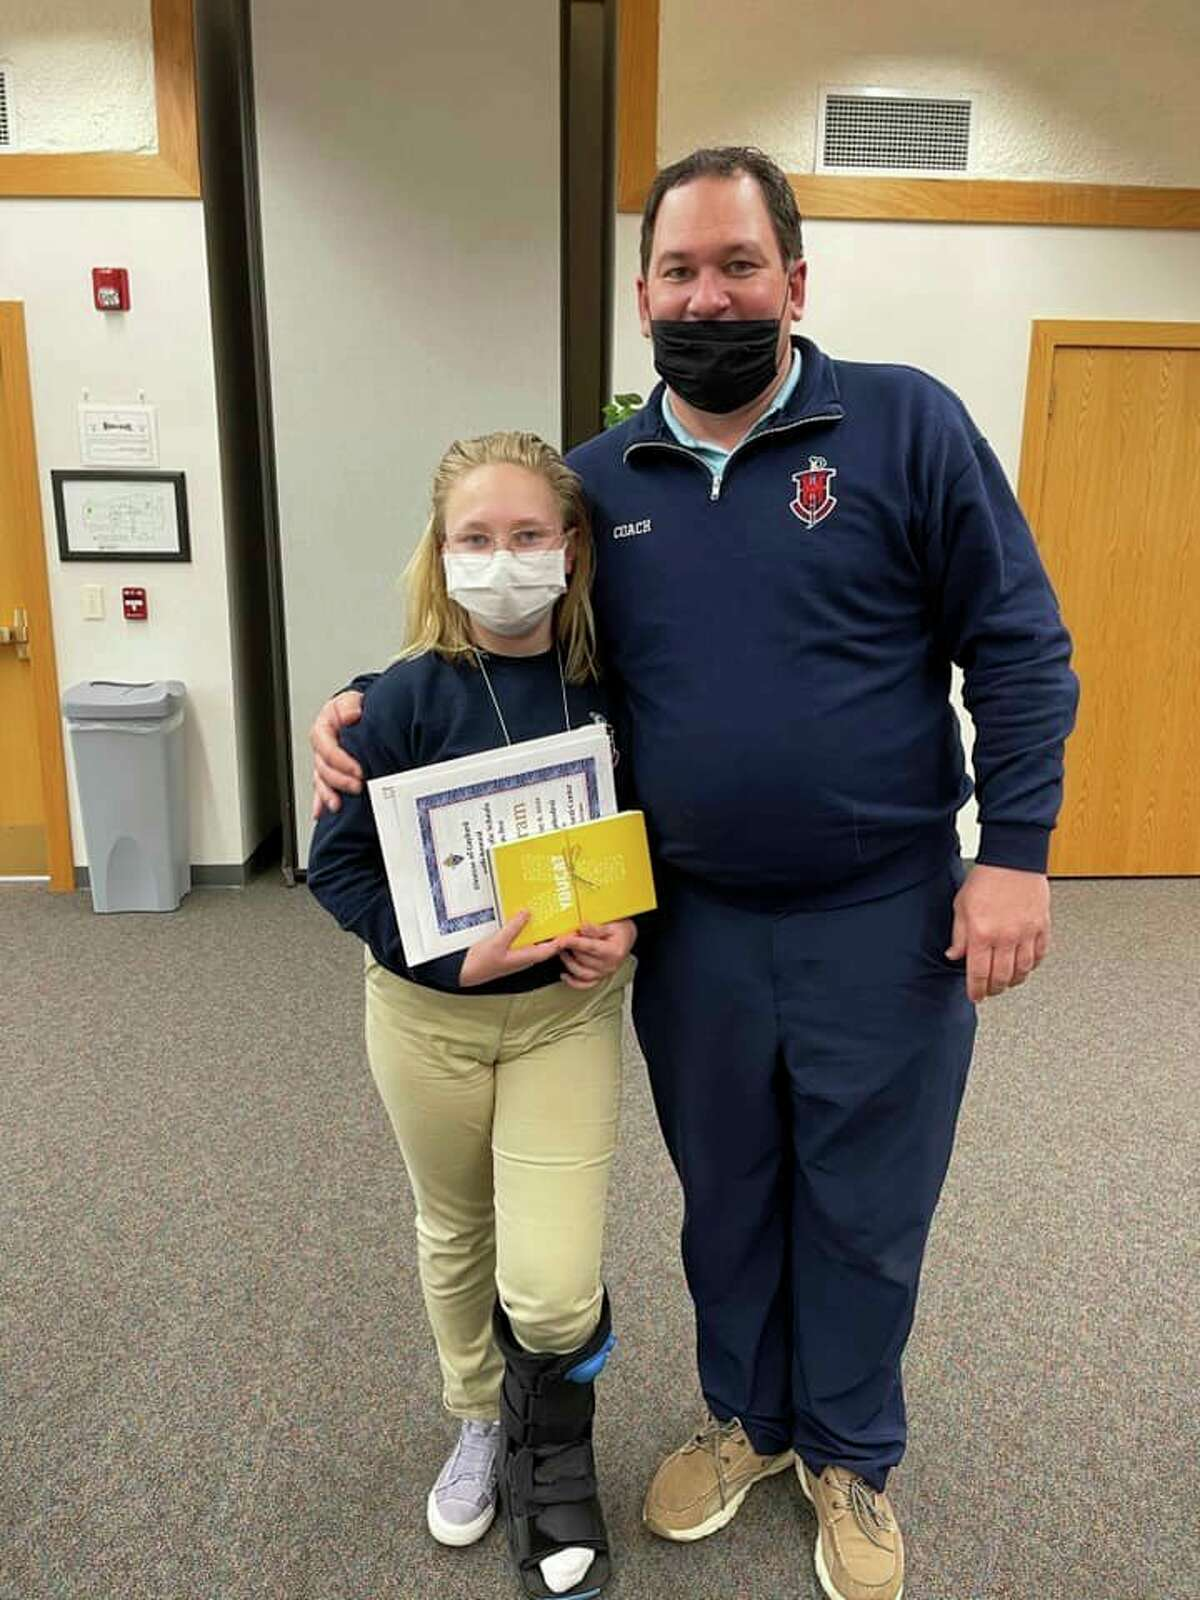 AnnabelleKieszkowski and her father, Ryan, pose for a photo after Annabelle's ninth-place finish at the10th Annual Diocesan Catechism Bee in Gaylord on Thursday. (Courtesy photo)